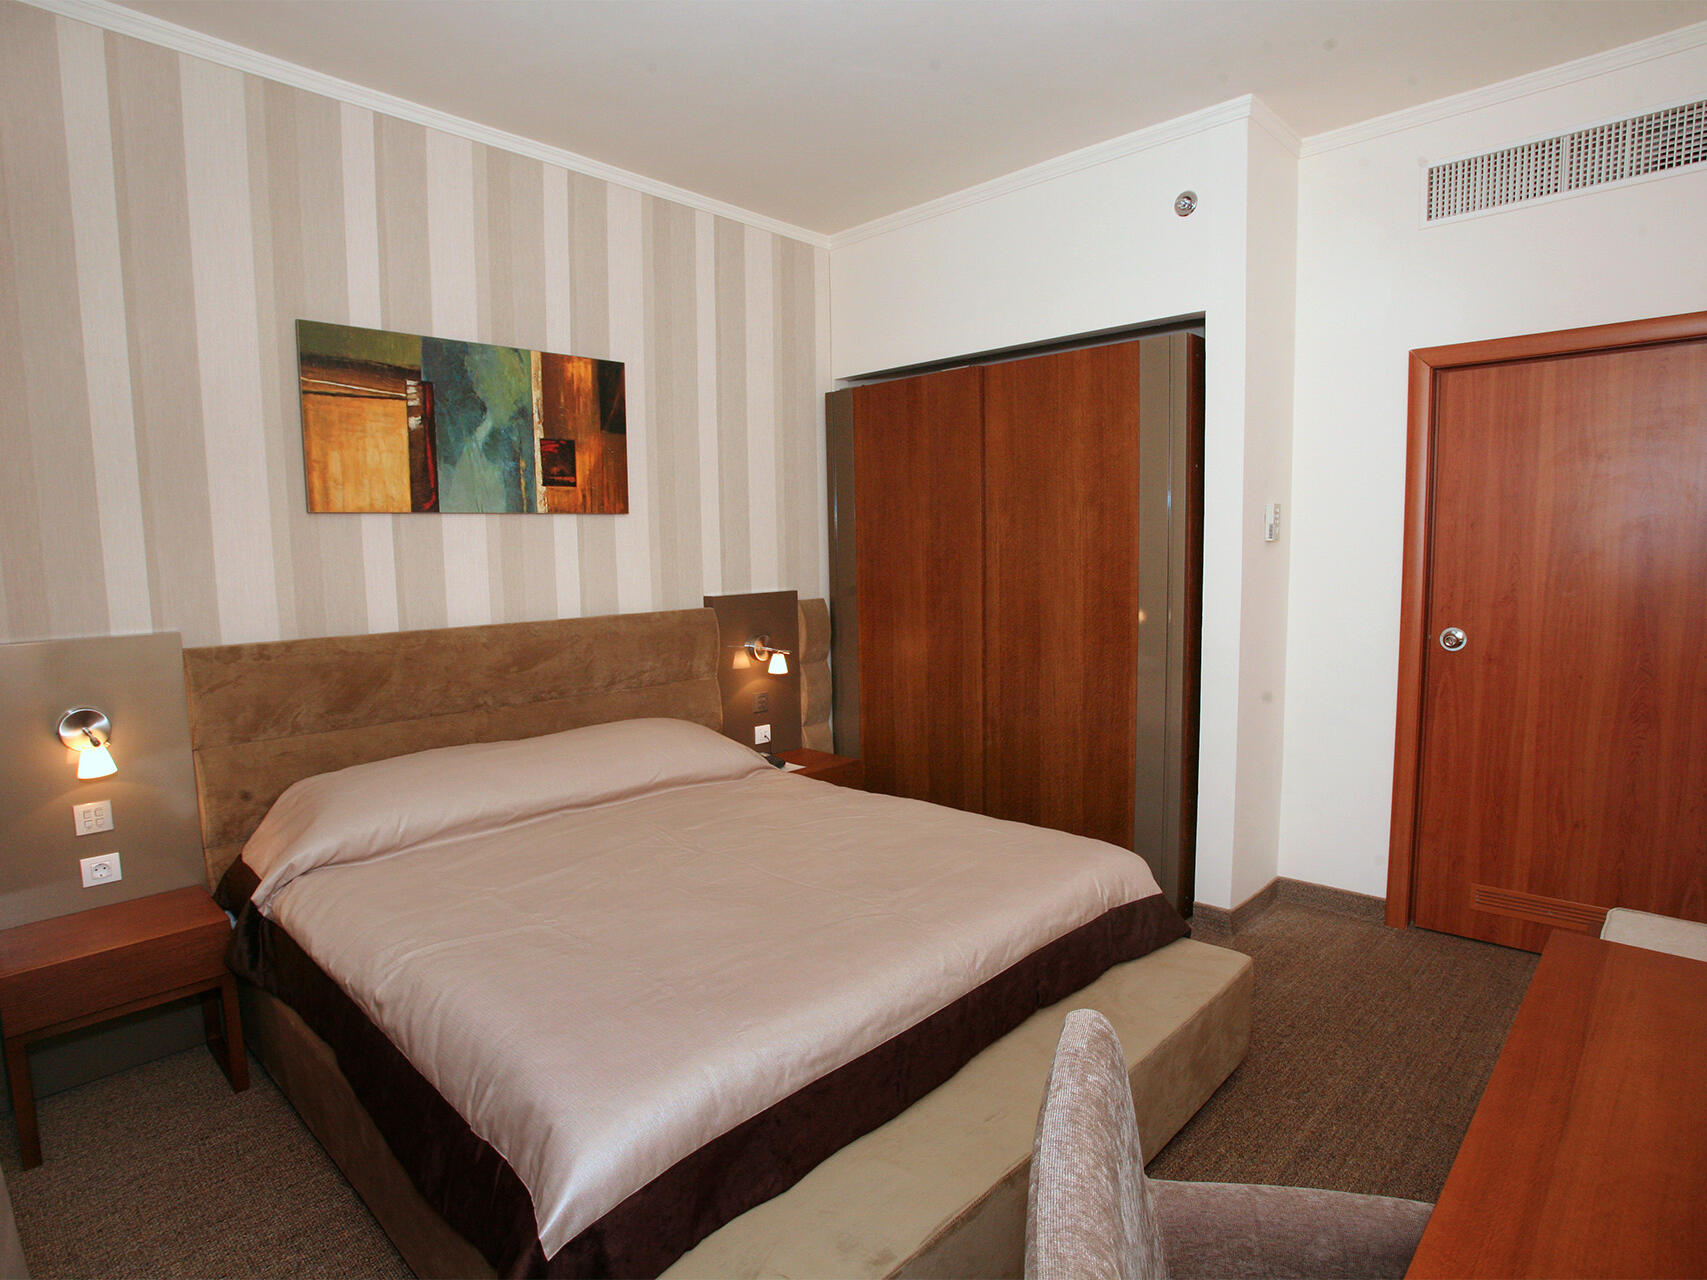 Standard Suite at IAKI Conference & Spa Hotel in Mamaia